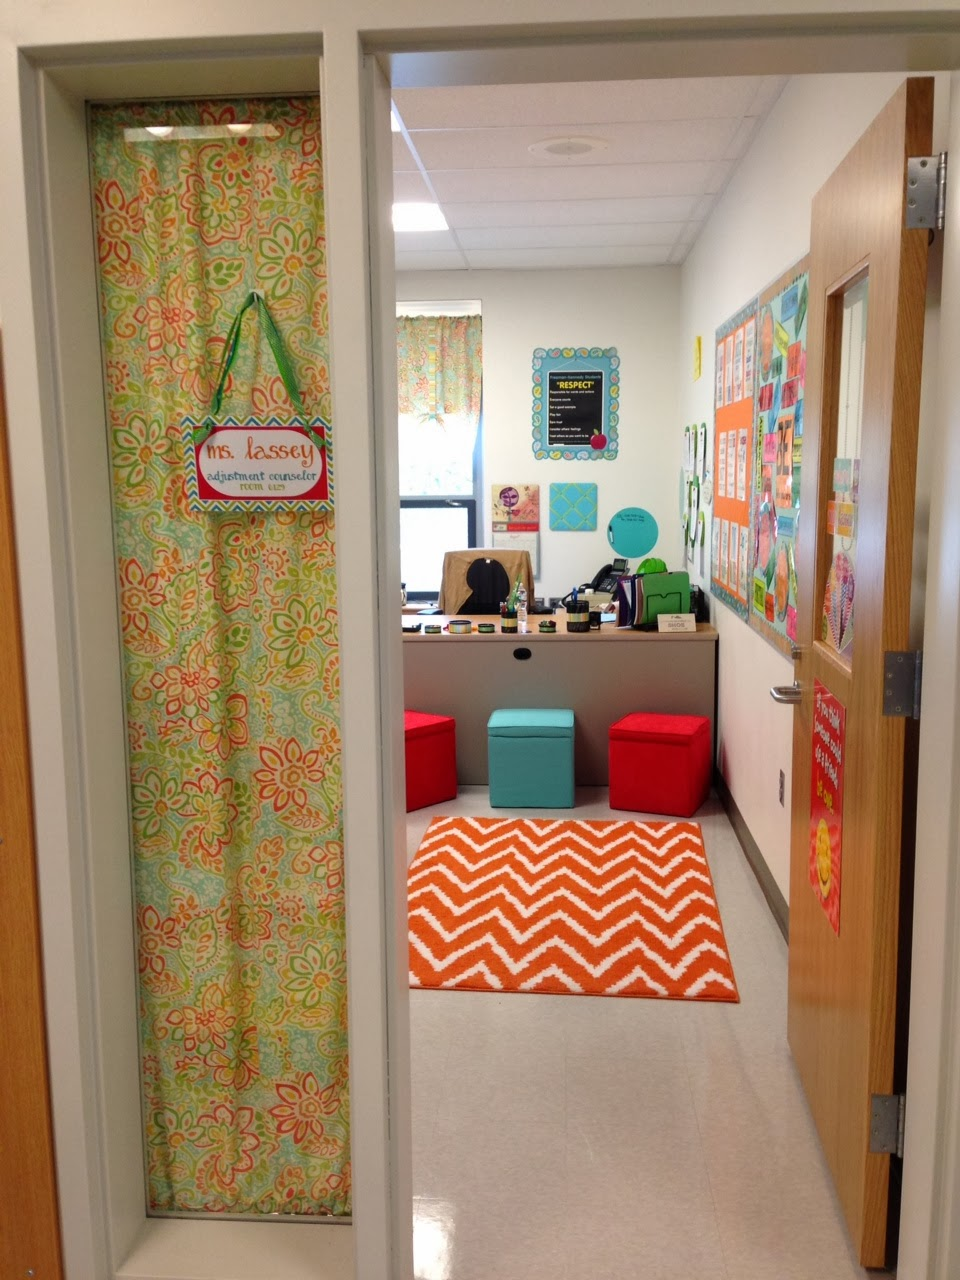 Popular The School Nurse Often Has A Tiny Office Where Students Visit When They Injure Themselves Or Arent Feeling Well Stocking And Decorating Your Nursing Office Will Help Children Feel More Comfortable And Welcome, And It Will Also Give You A